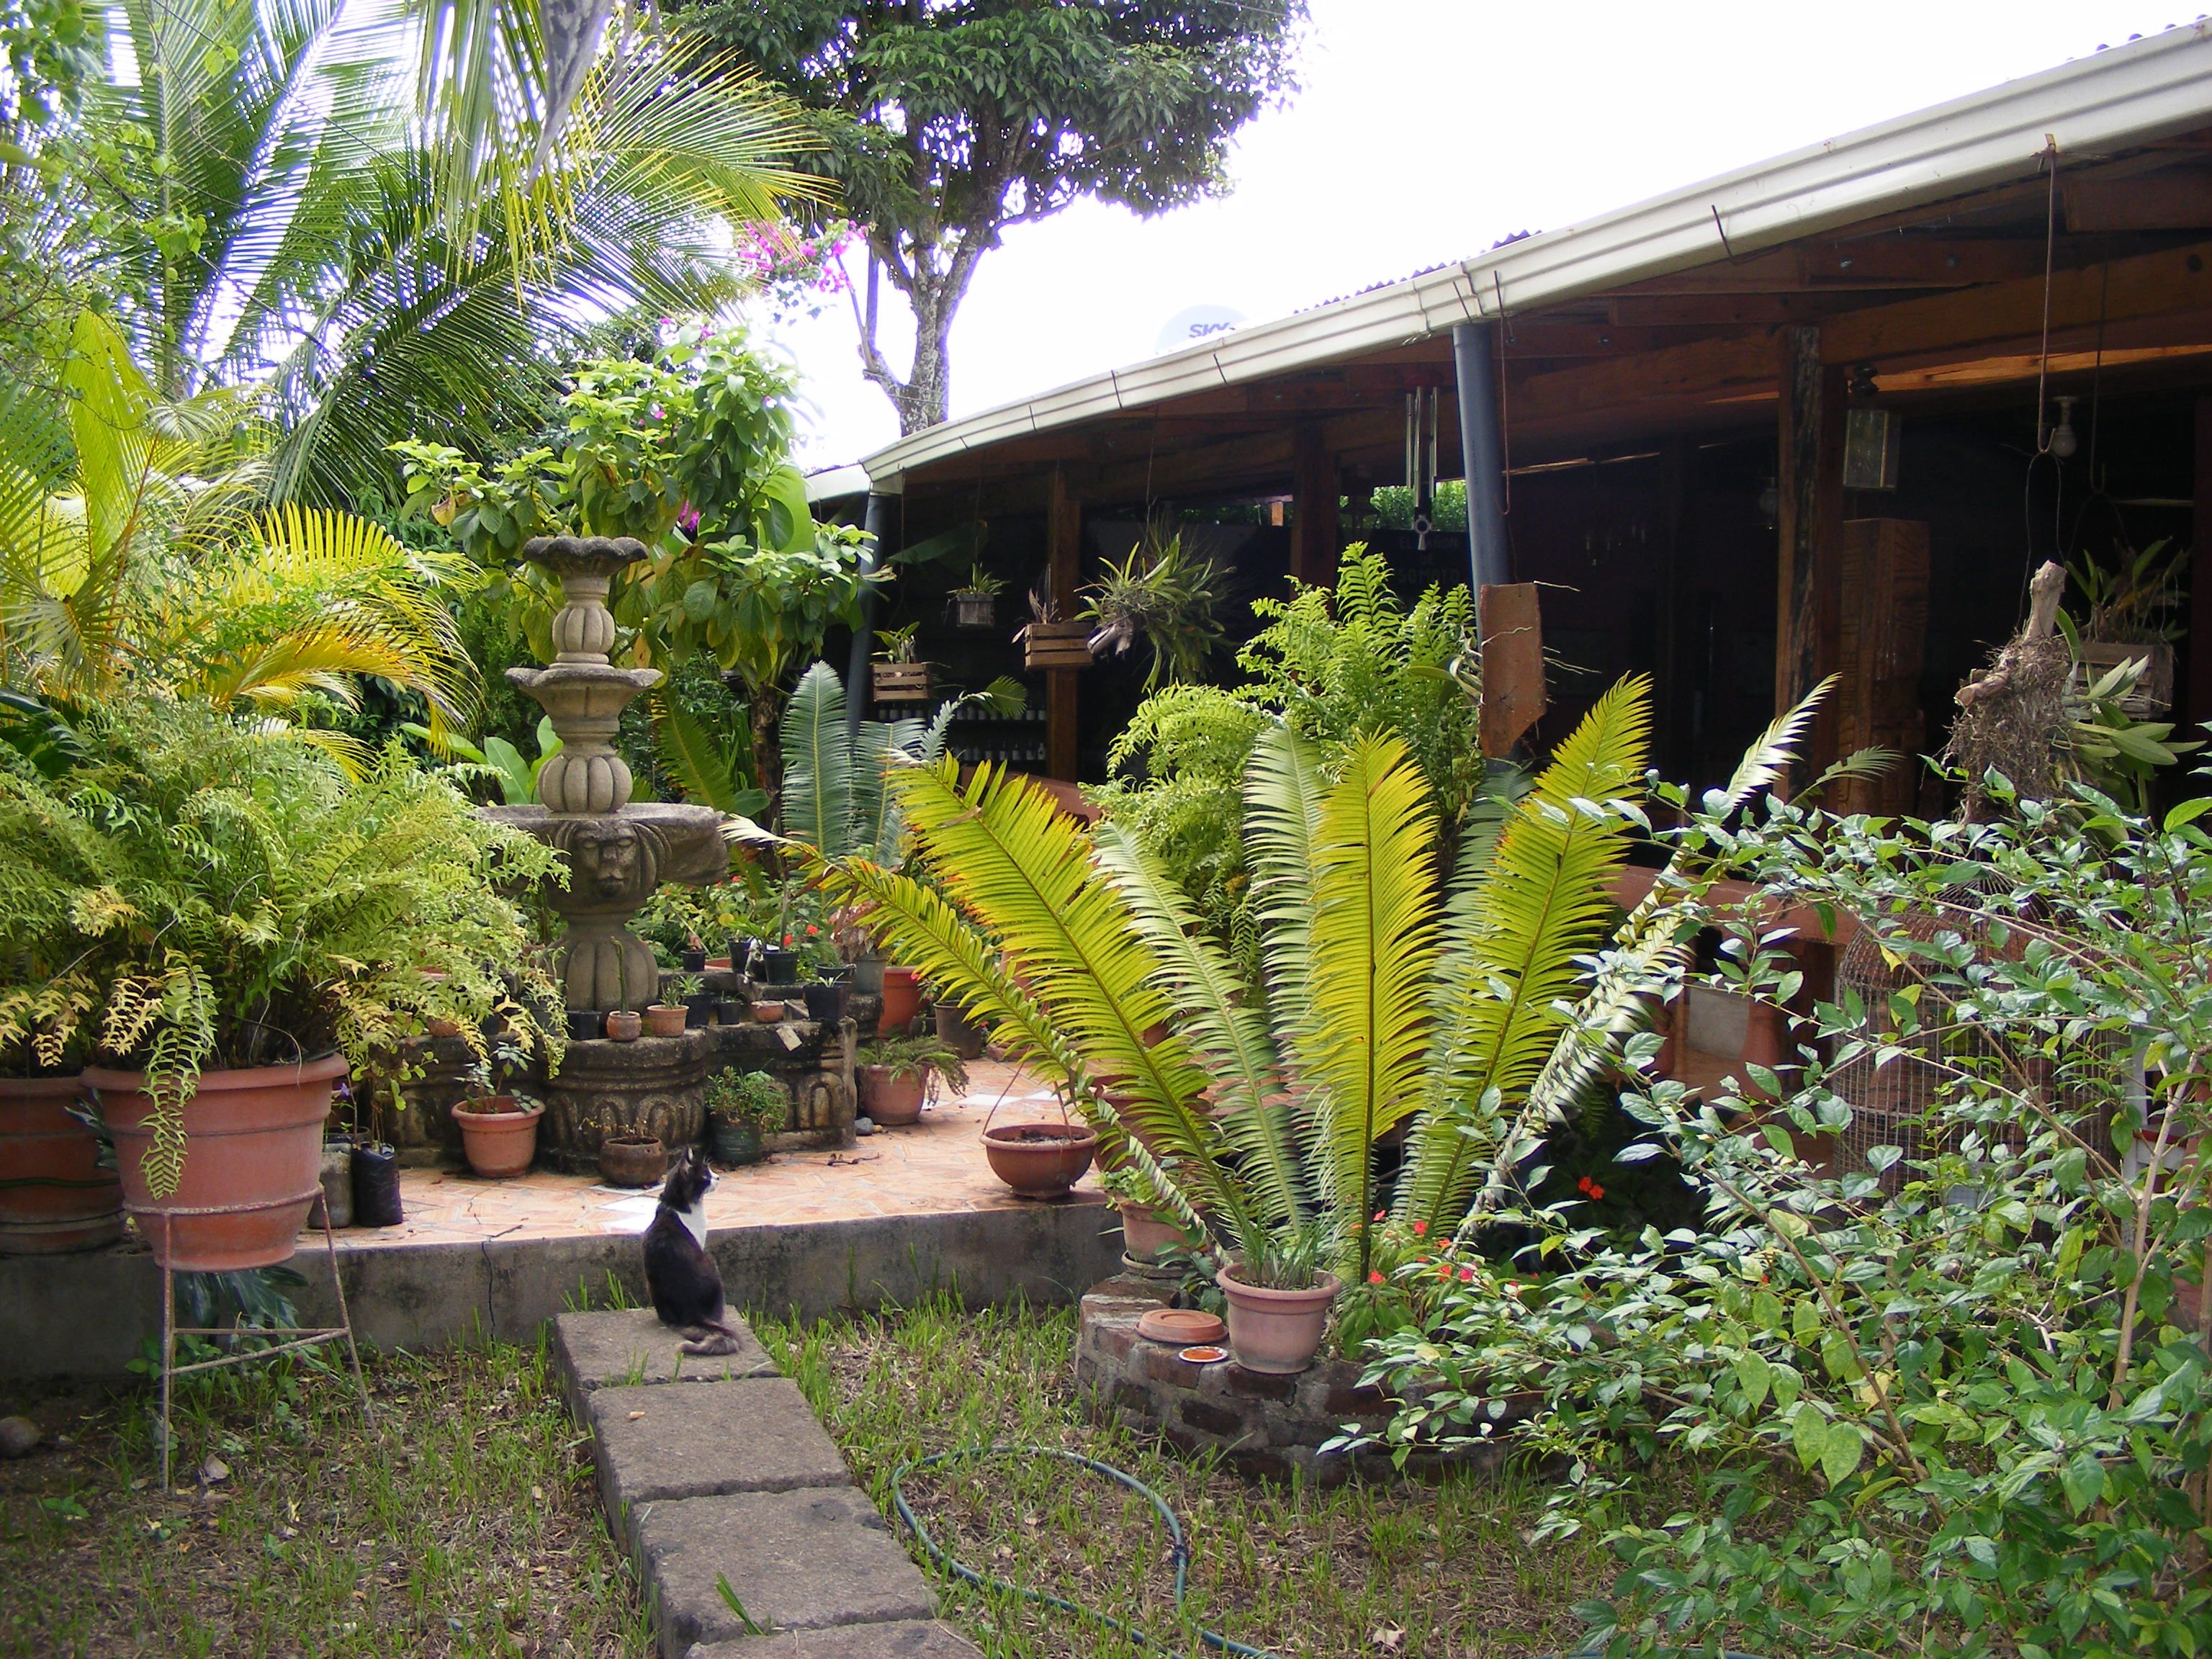 Hotel Gardens In Nicaragua Provide Guests With A Close Look